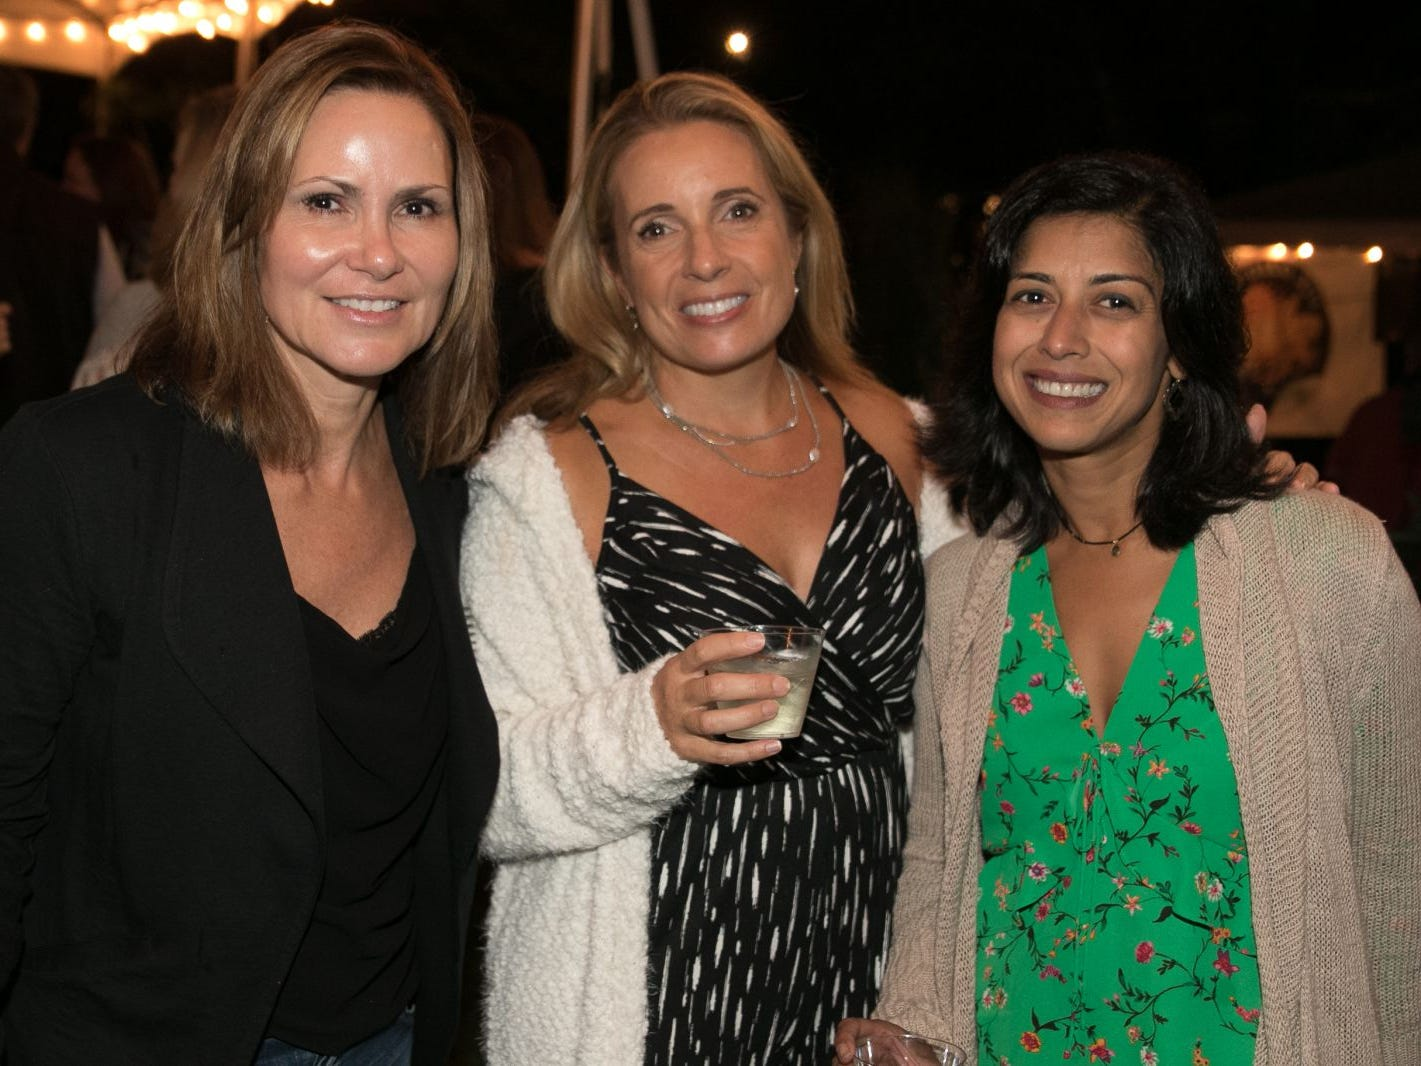 "Christine Cundiff, Lisa Jacoby, Ajanta Kumar. Pam Chmiel, The Tres Amigos Paella Company (David Colin, Joe Scanlon and Jeff Saladucha), The Jims (Jim Gibney and Jim Toscano), George Nikias, Ron Oscher and Neil Murphy held Ridgewood Cooks for a Cause to benefit ""Cookies For Kids Cancer"" (Childhood Cancer Research) and YCS (Youth Consultaion Services) charities. 09/08/2018"